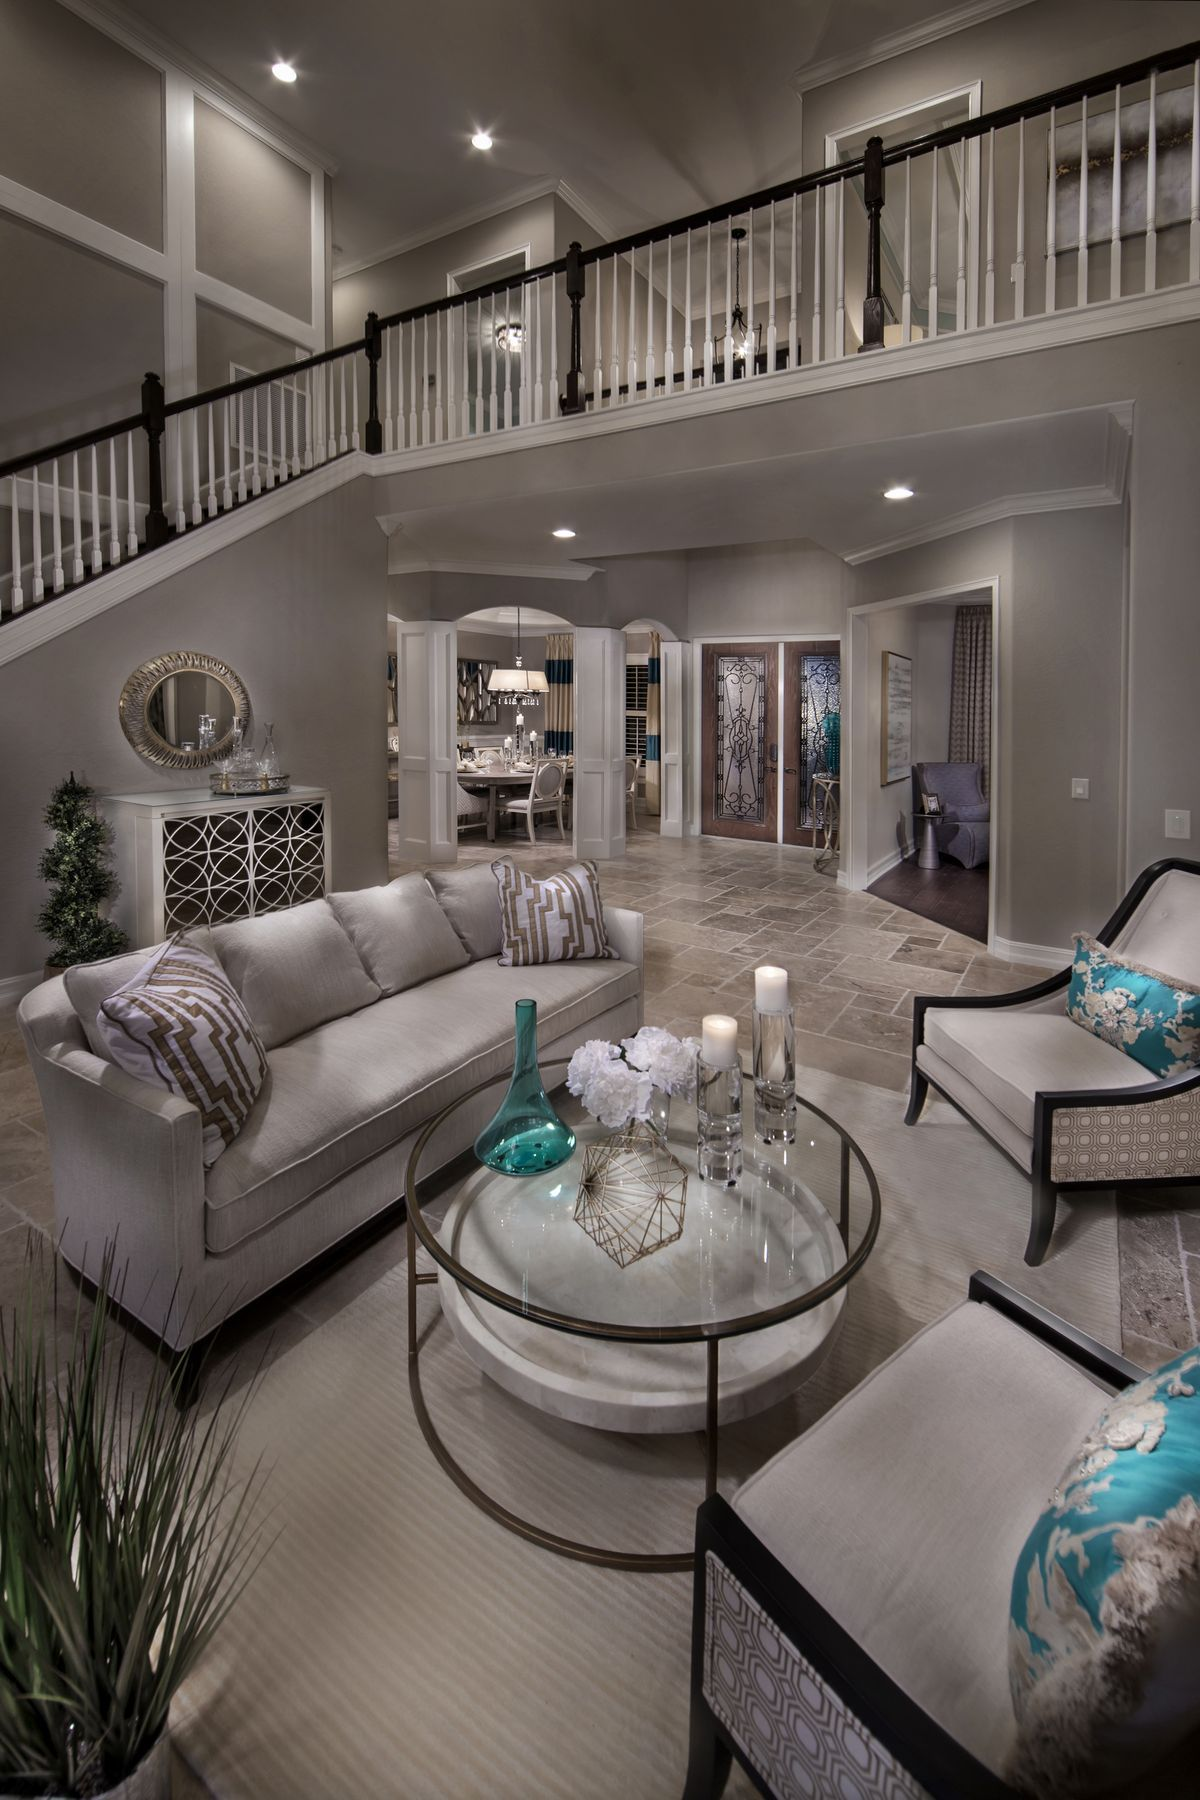 Florida Luxury Homes Products 15 Best Decoration Ideas Florida Luxury Waterfront Condo Luxury Home Decor New Homes New House Plans